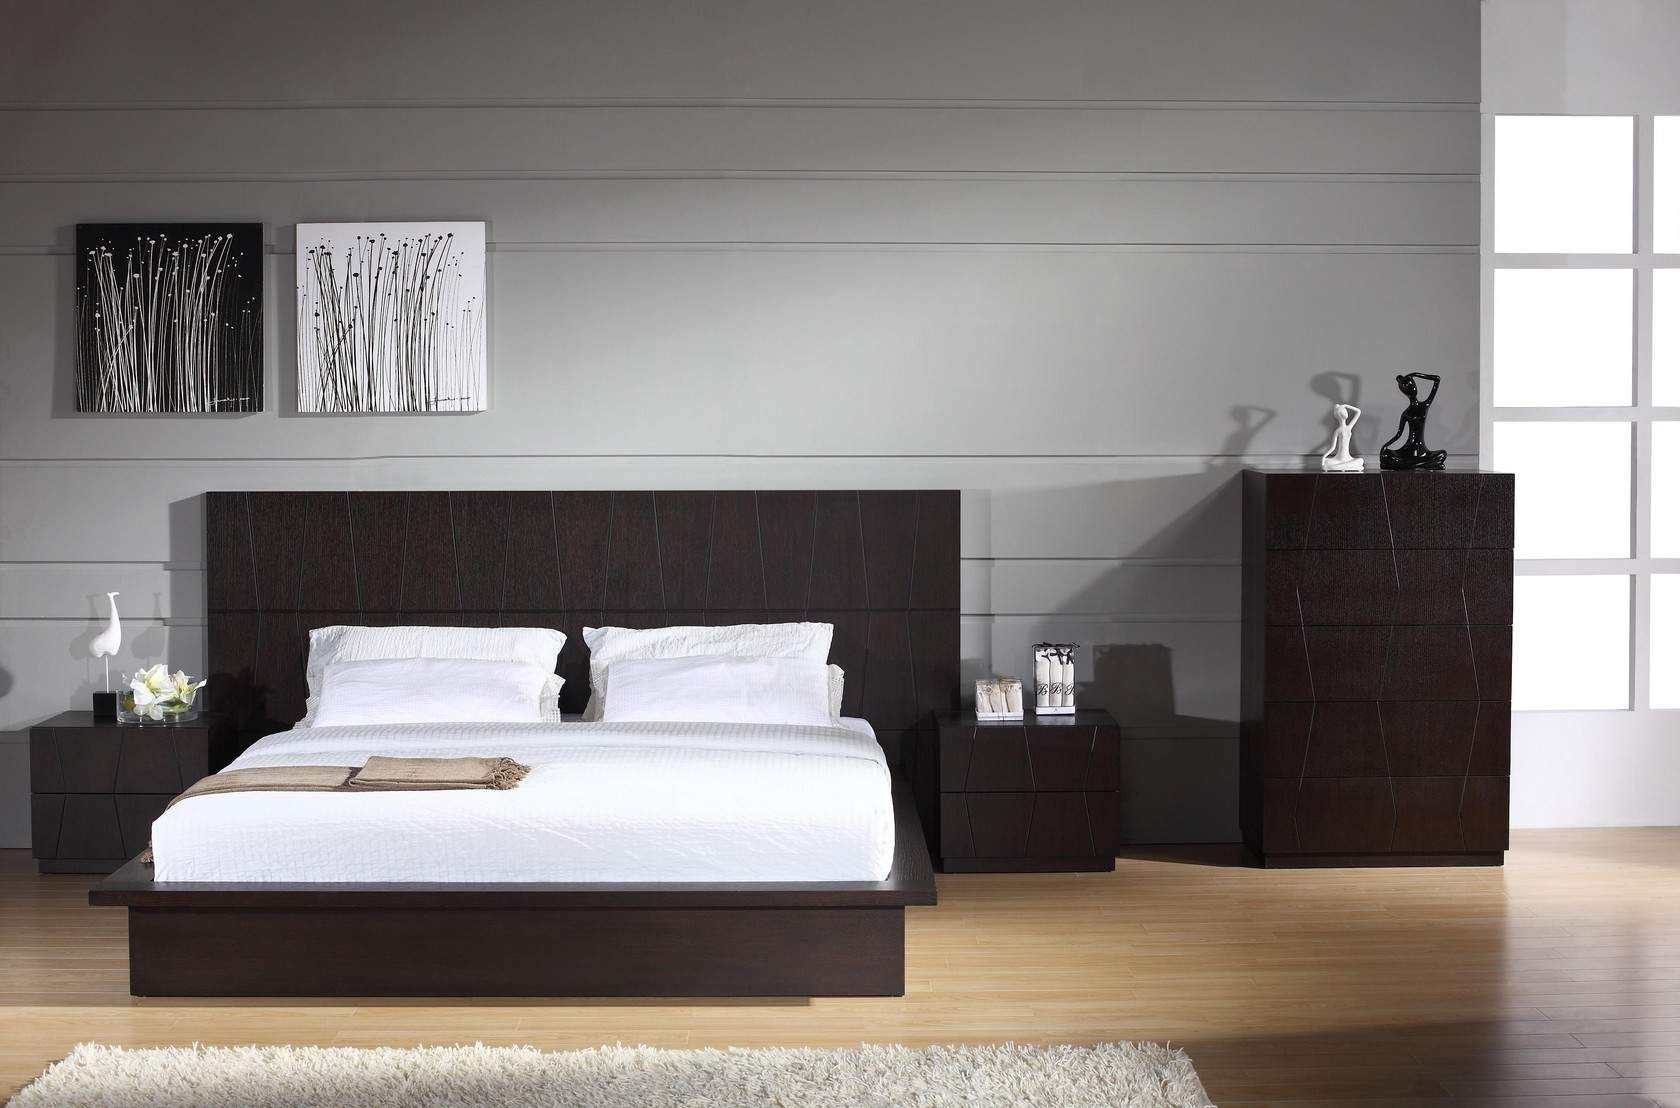 normal bedroom decor furnishings with showy thought - http://www